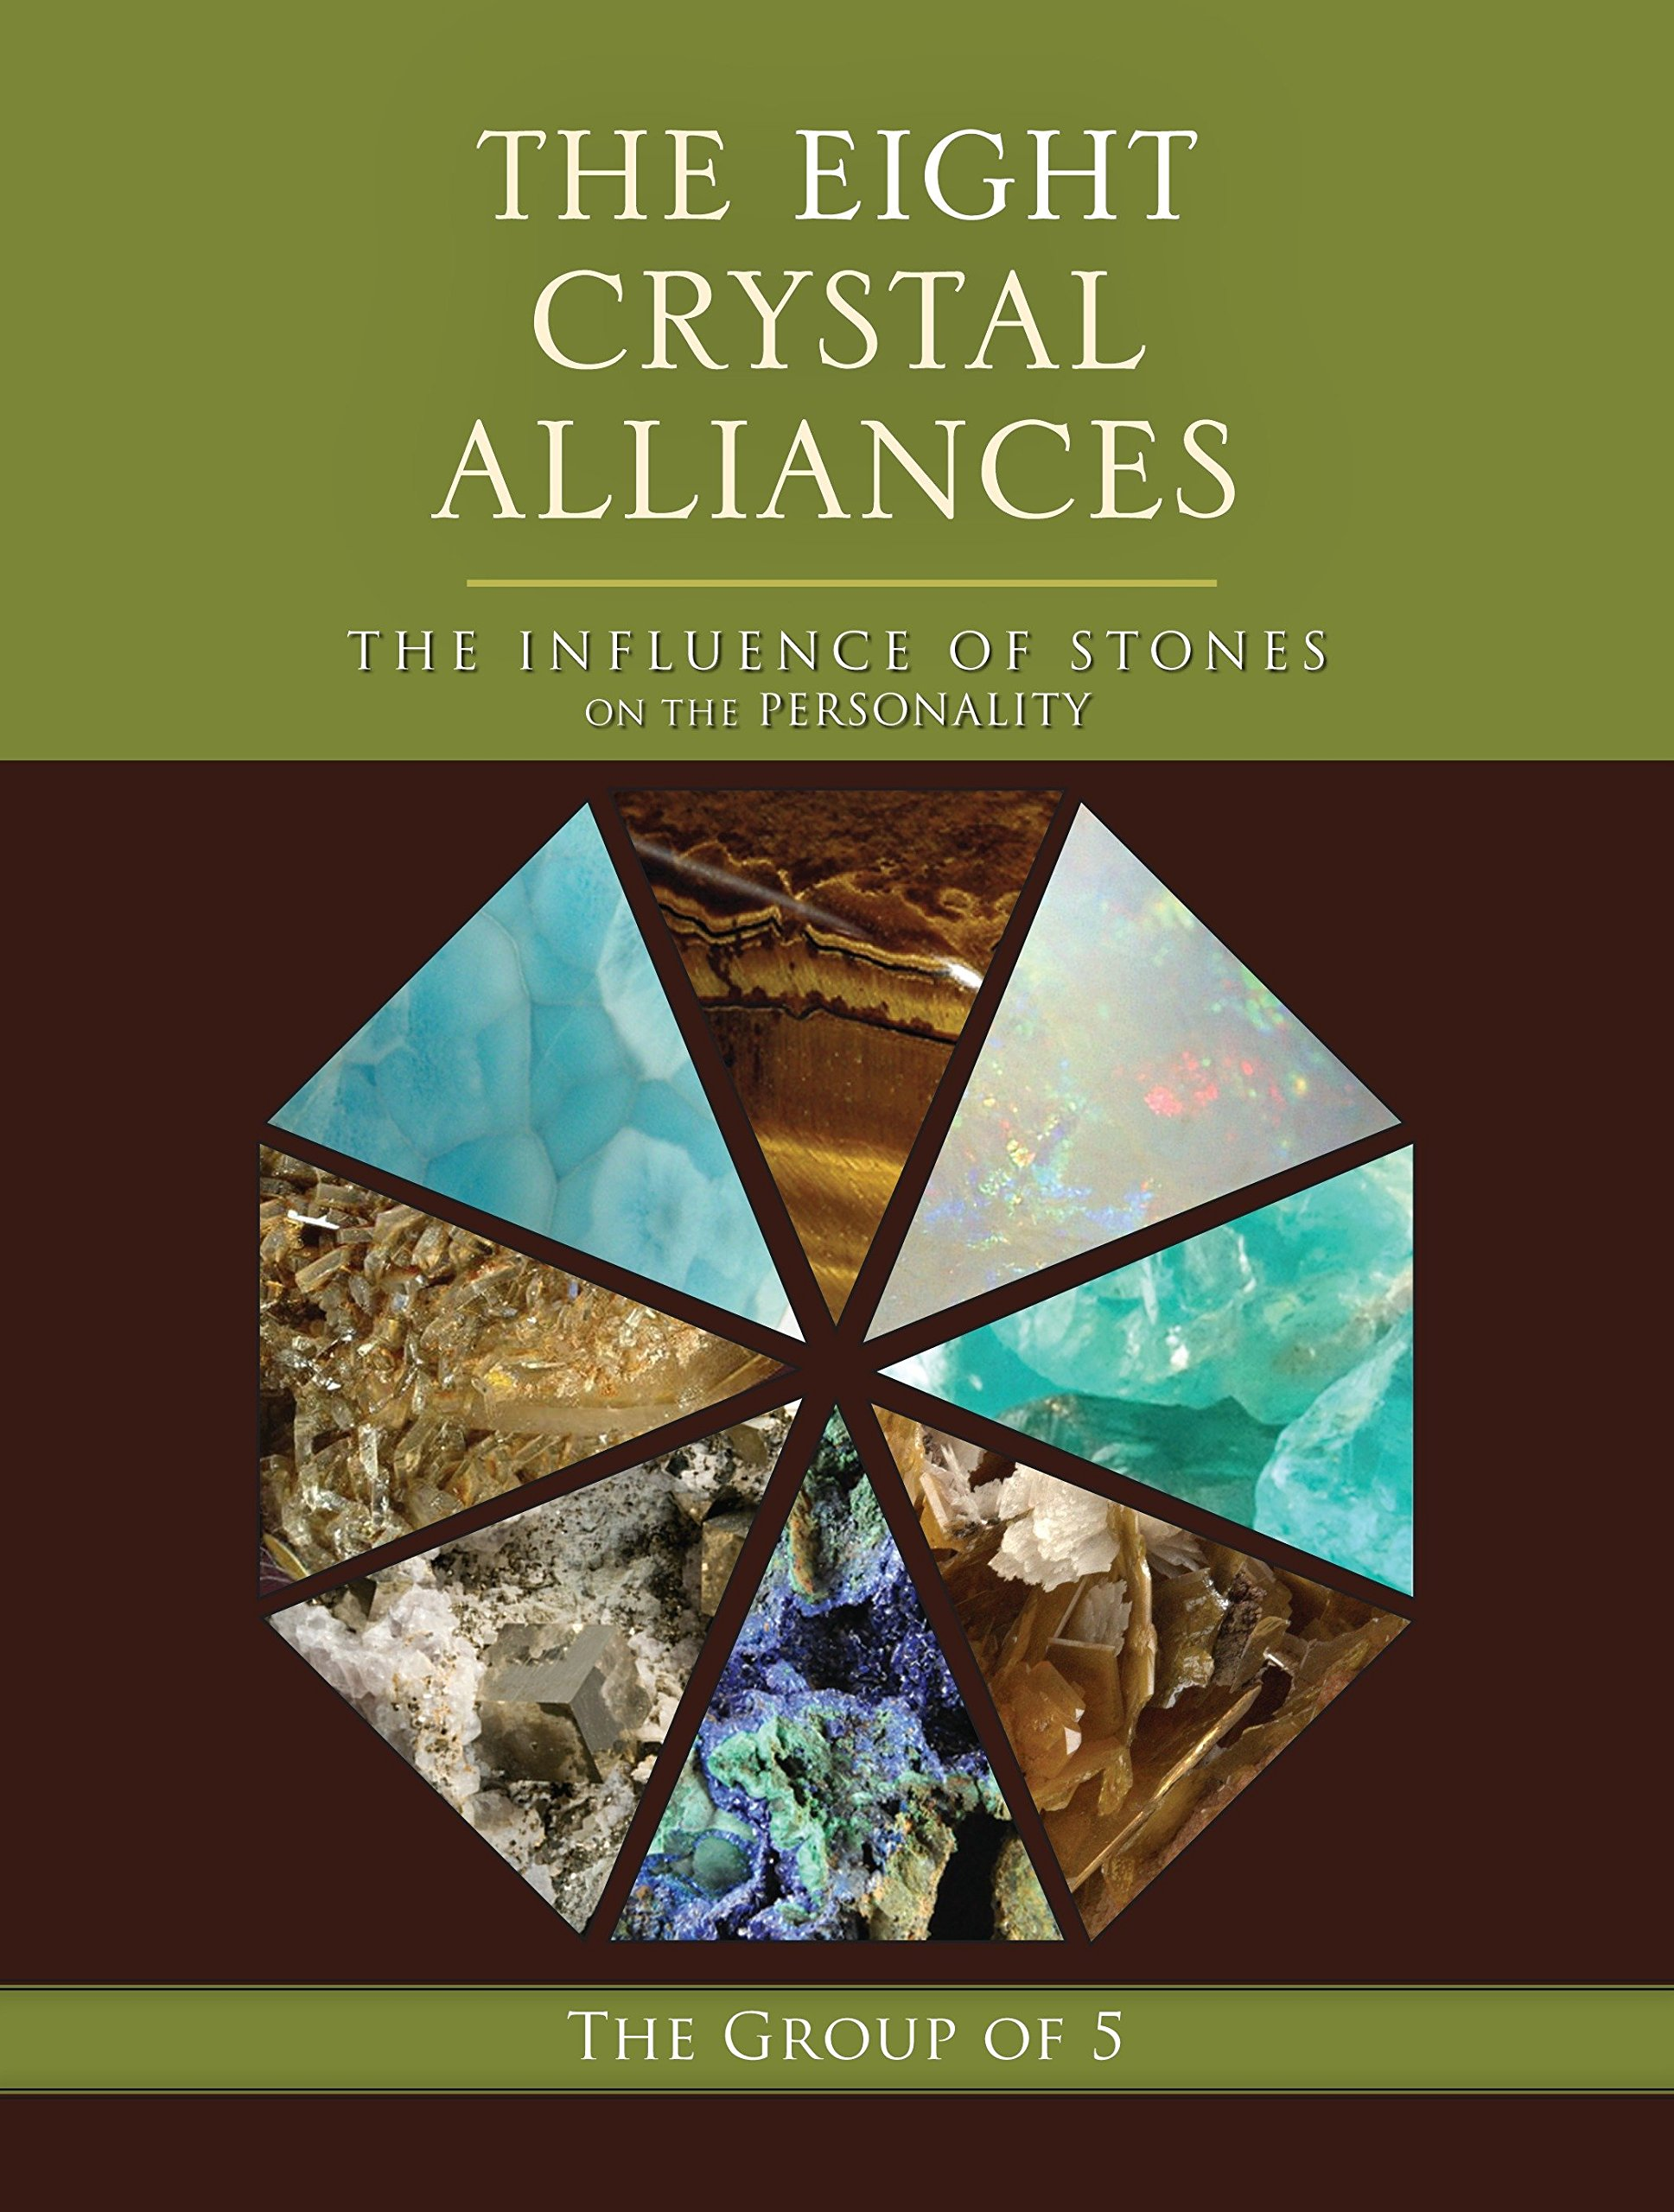 The Eight Crystal Alliances: The Influence of Stones on the Personality (The Group of 5 Crystals Series) pdf epub